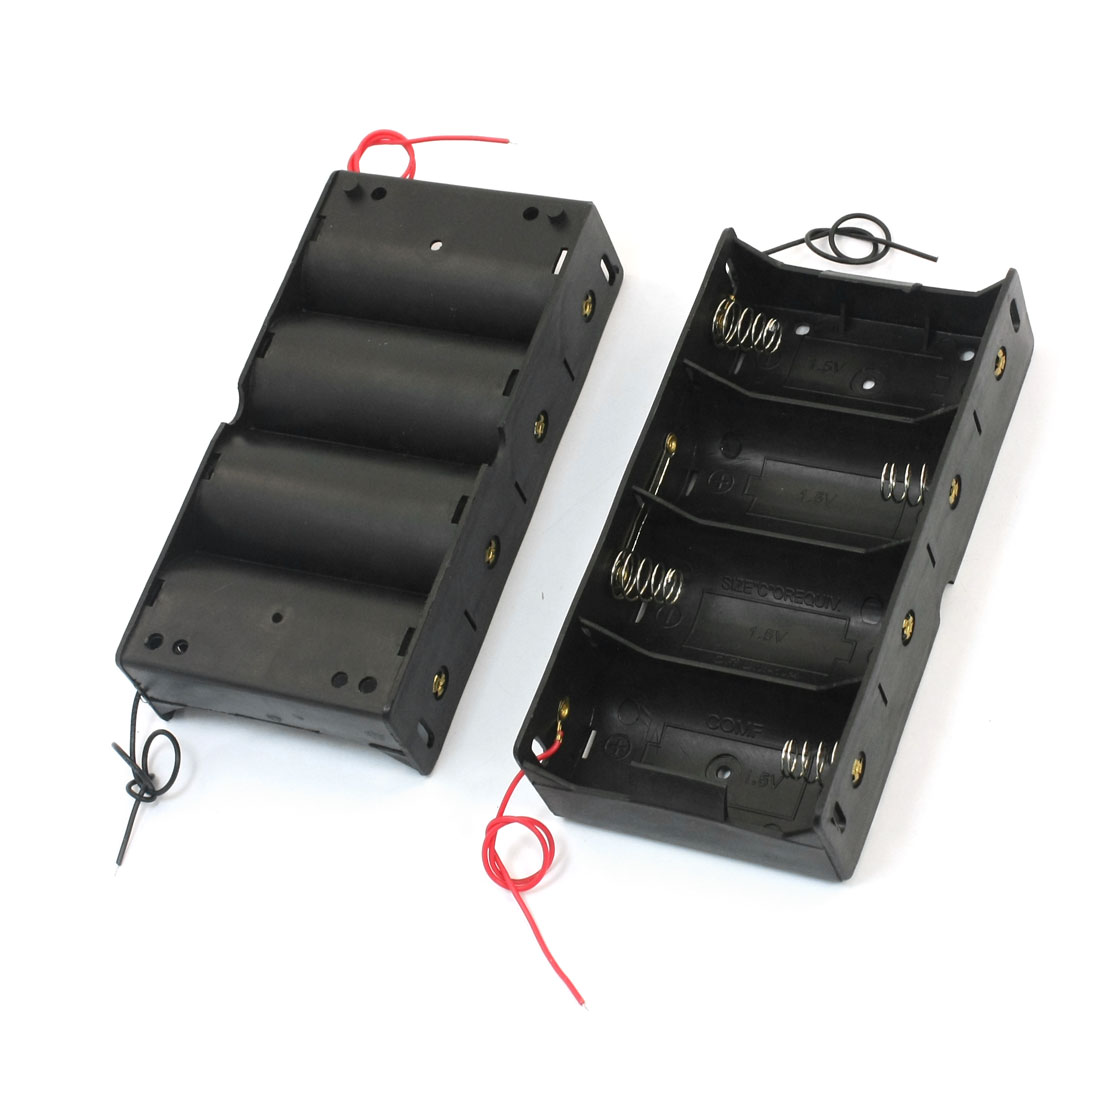 2 Pcs Spring Loaded Double Wired Rectangle Plastic Shell 4 x D 1.5V Battery Holder Case Storage Box